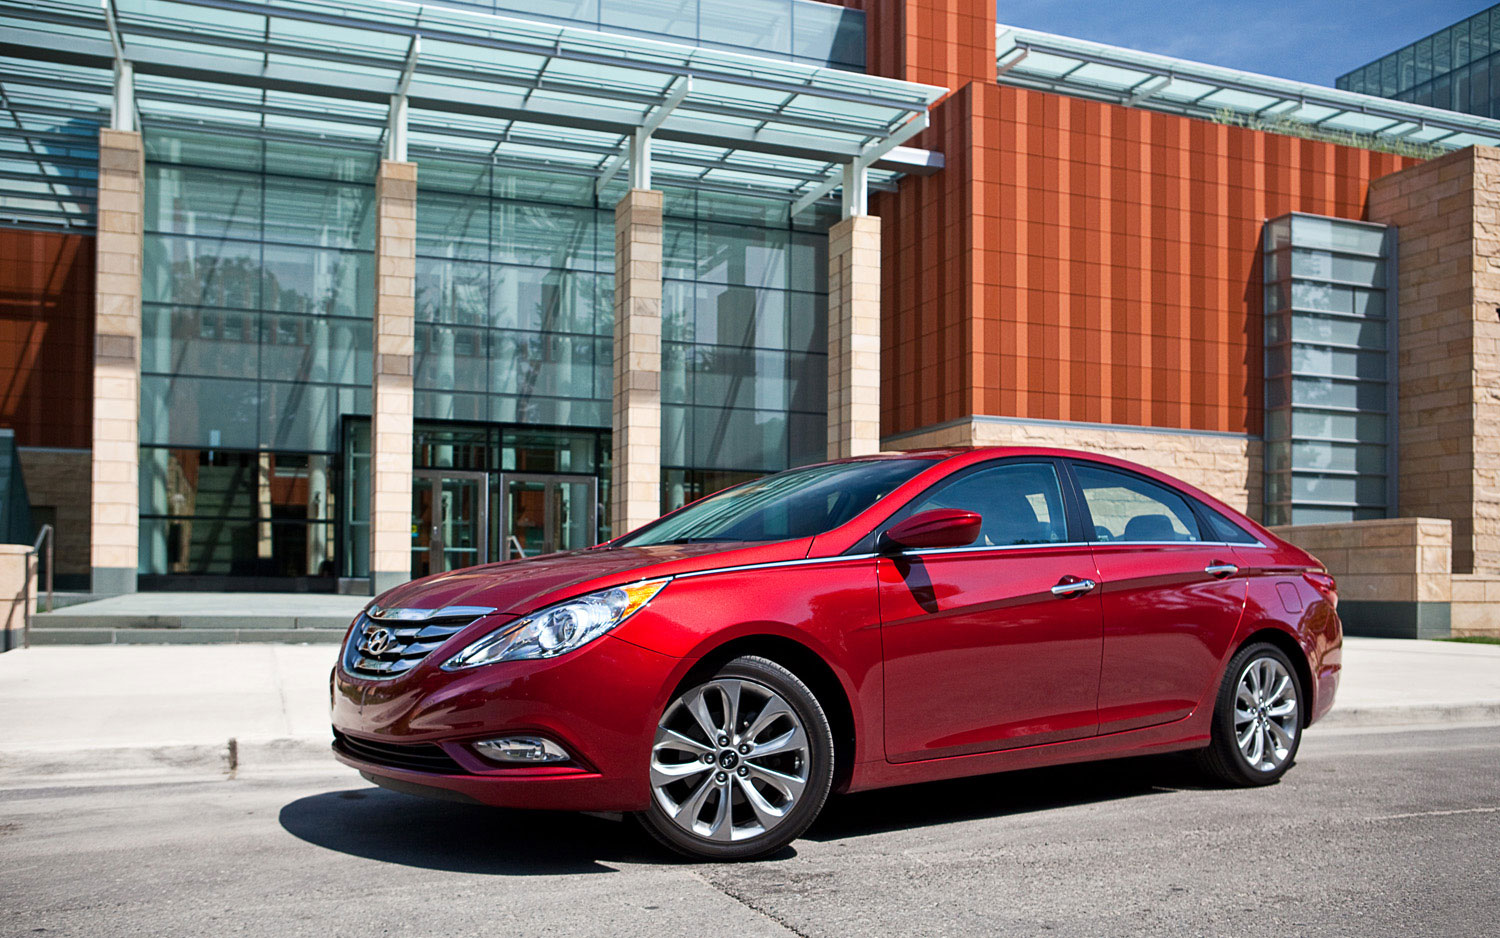 2011 Hyundai Sonata SE Left Side View2